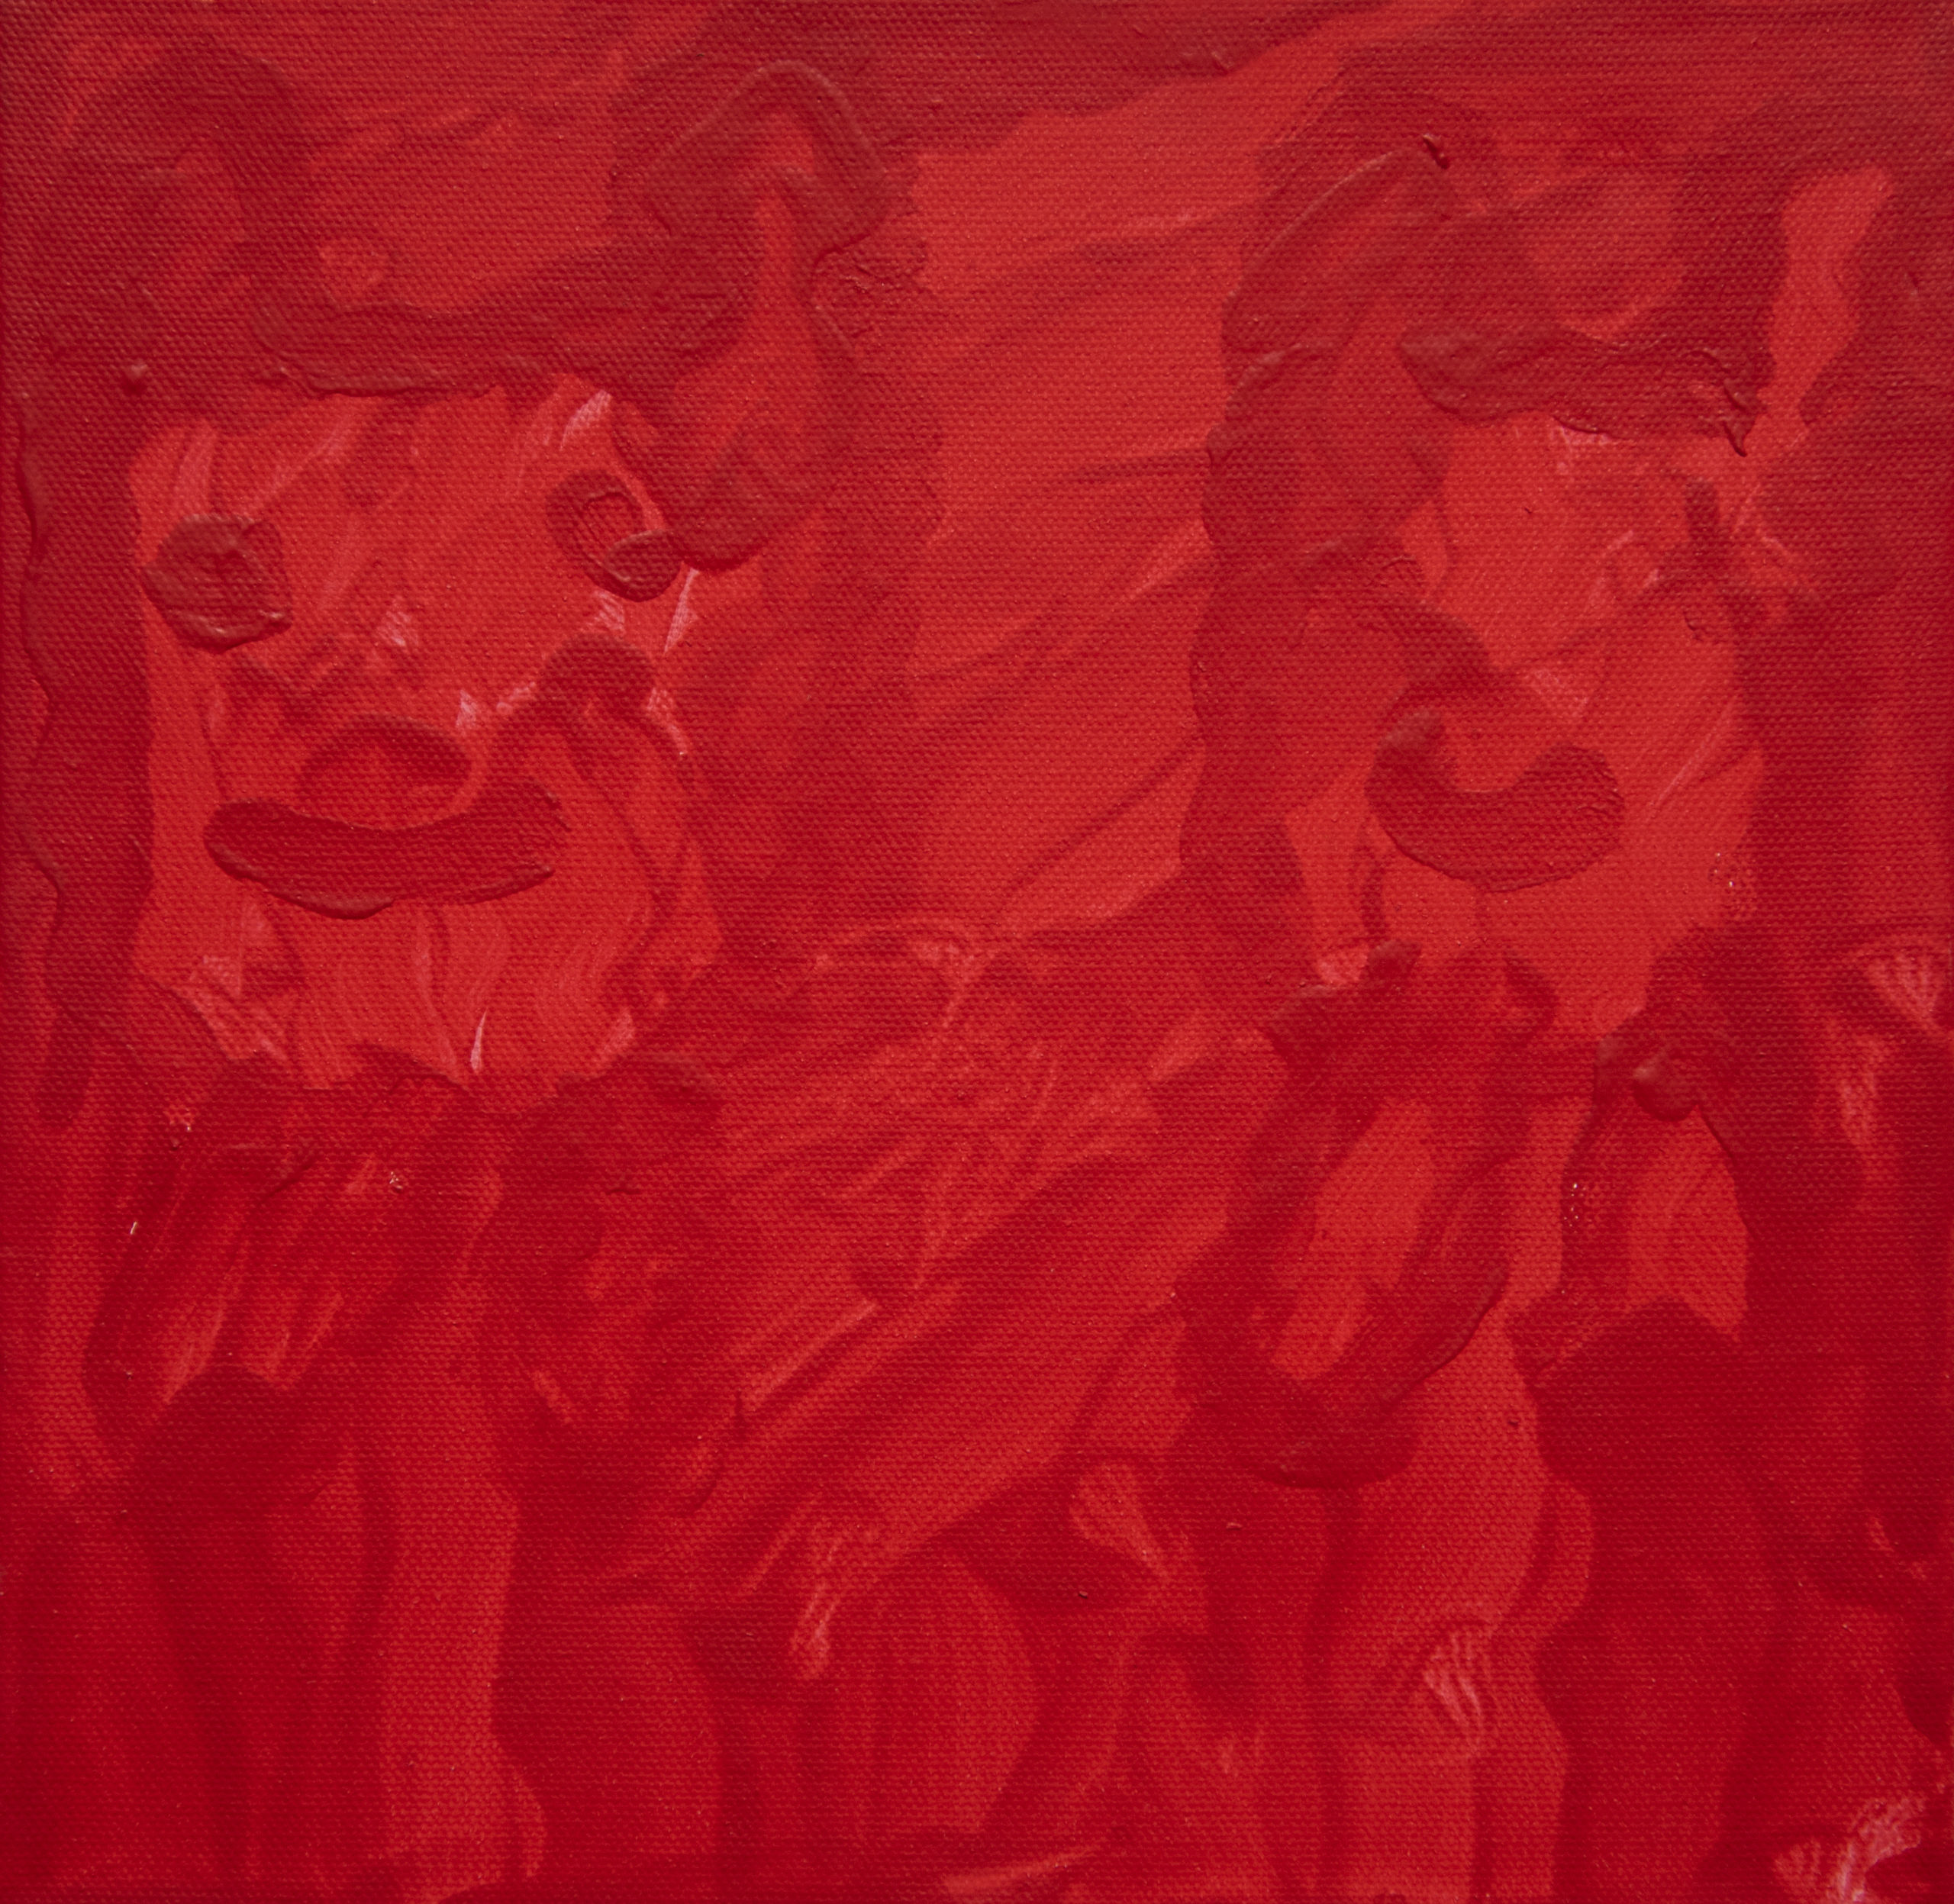 2 Dogs Acrylic on canvas by Charlene Murphy